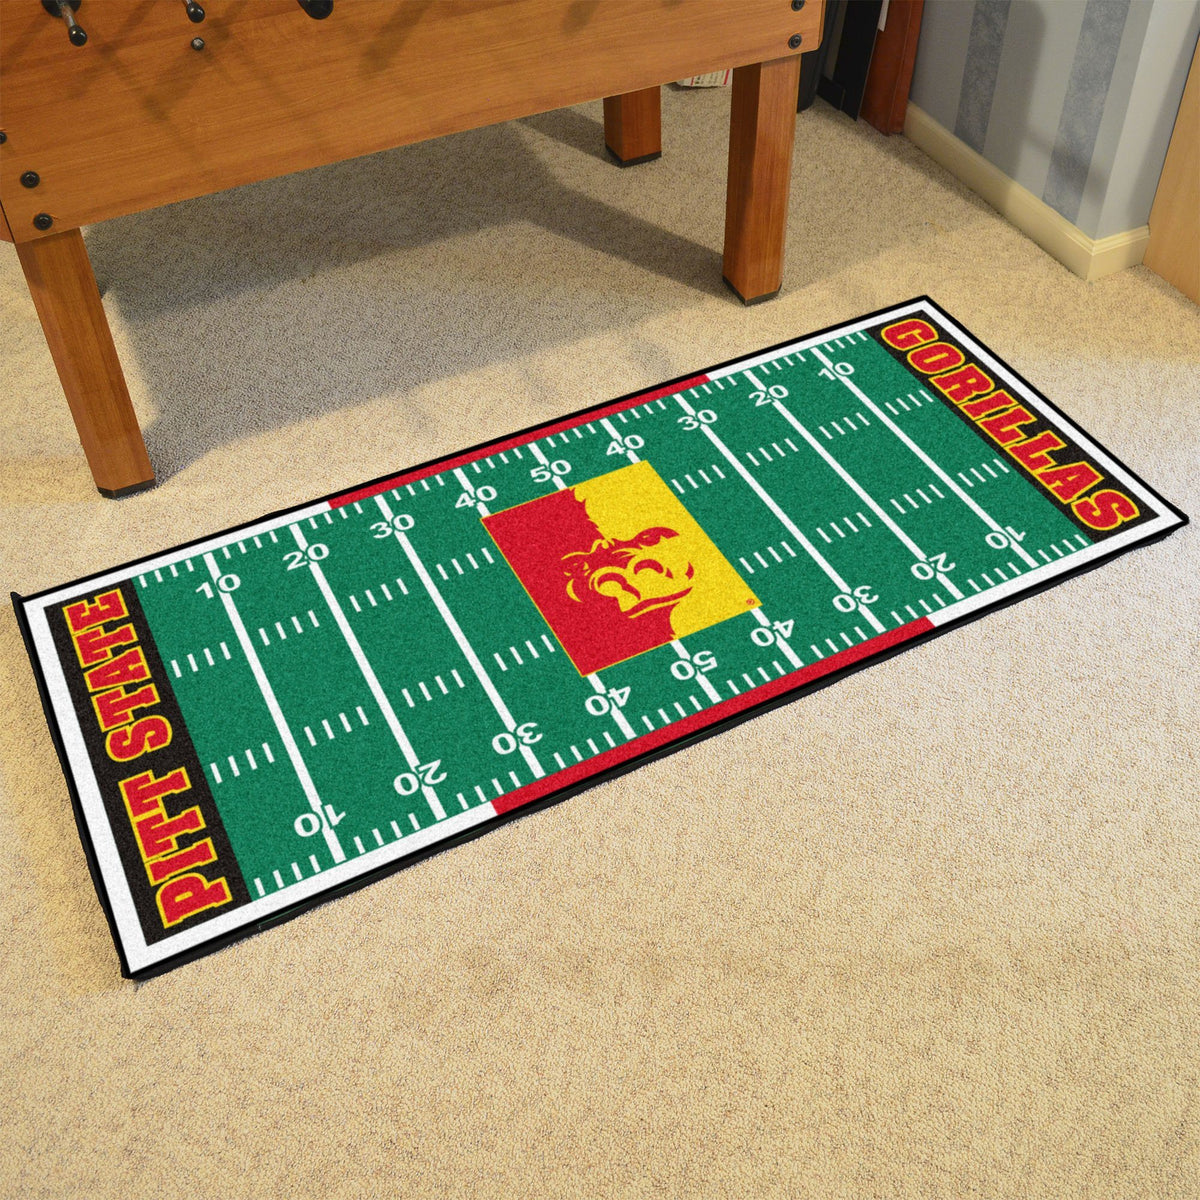 Collegiate - Football Field Runner Collegiate Mats, Rectangular Mats, Football Field Runner, Collegiate, Home Fan Mats Pittsburg State